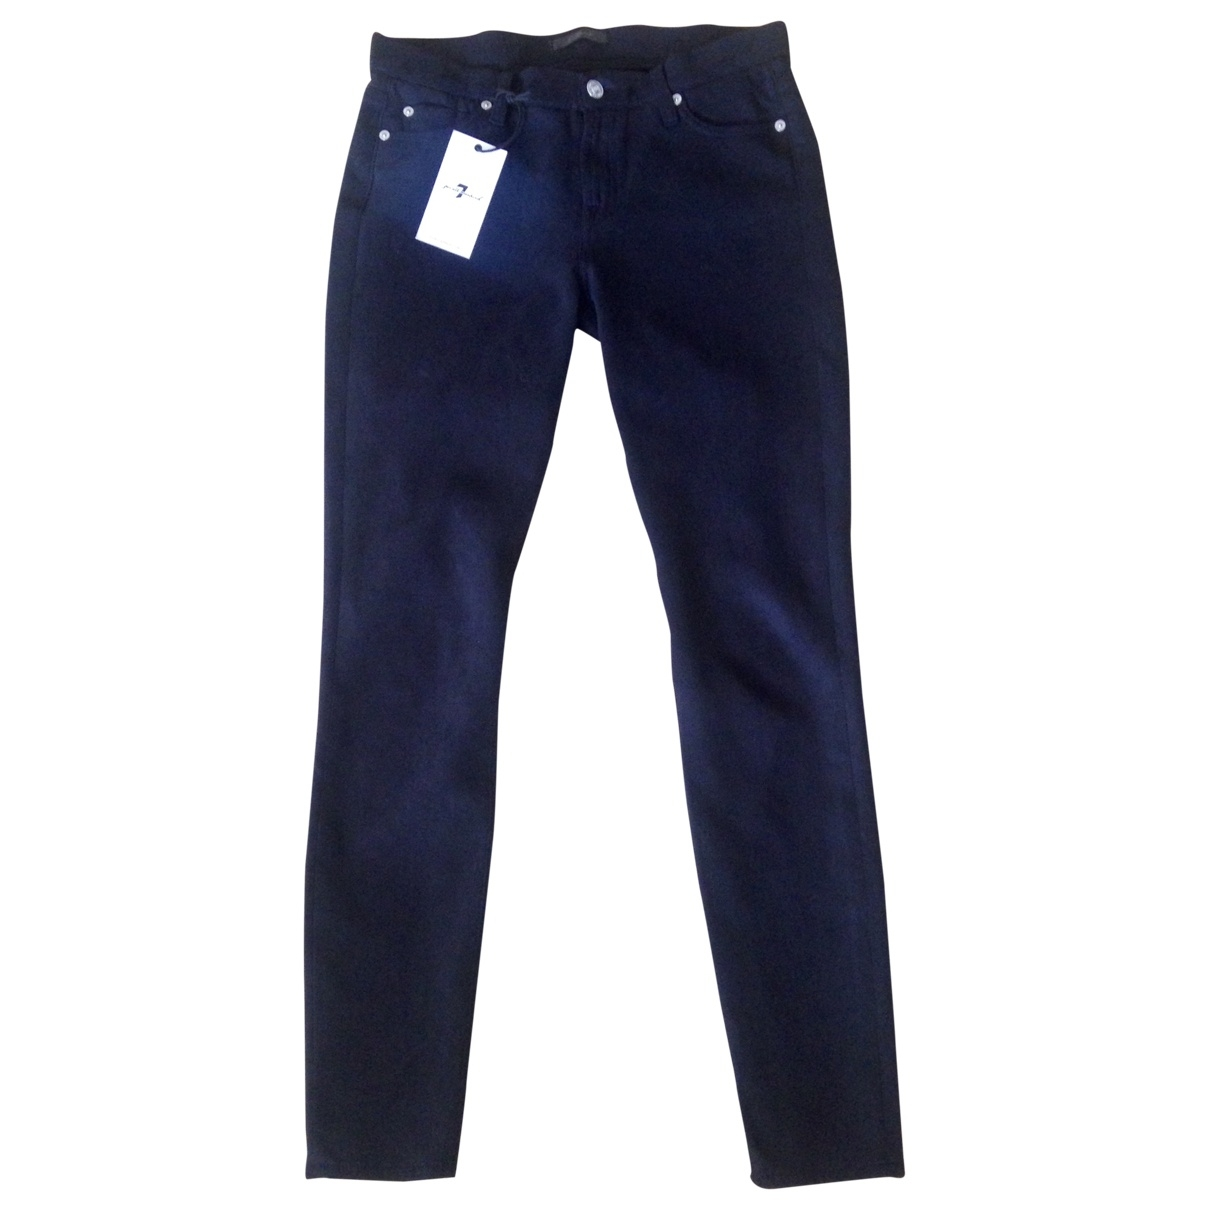 7 For All Mankind \N Black Jeans for Women 29 US